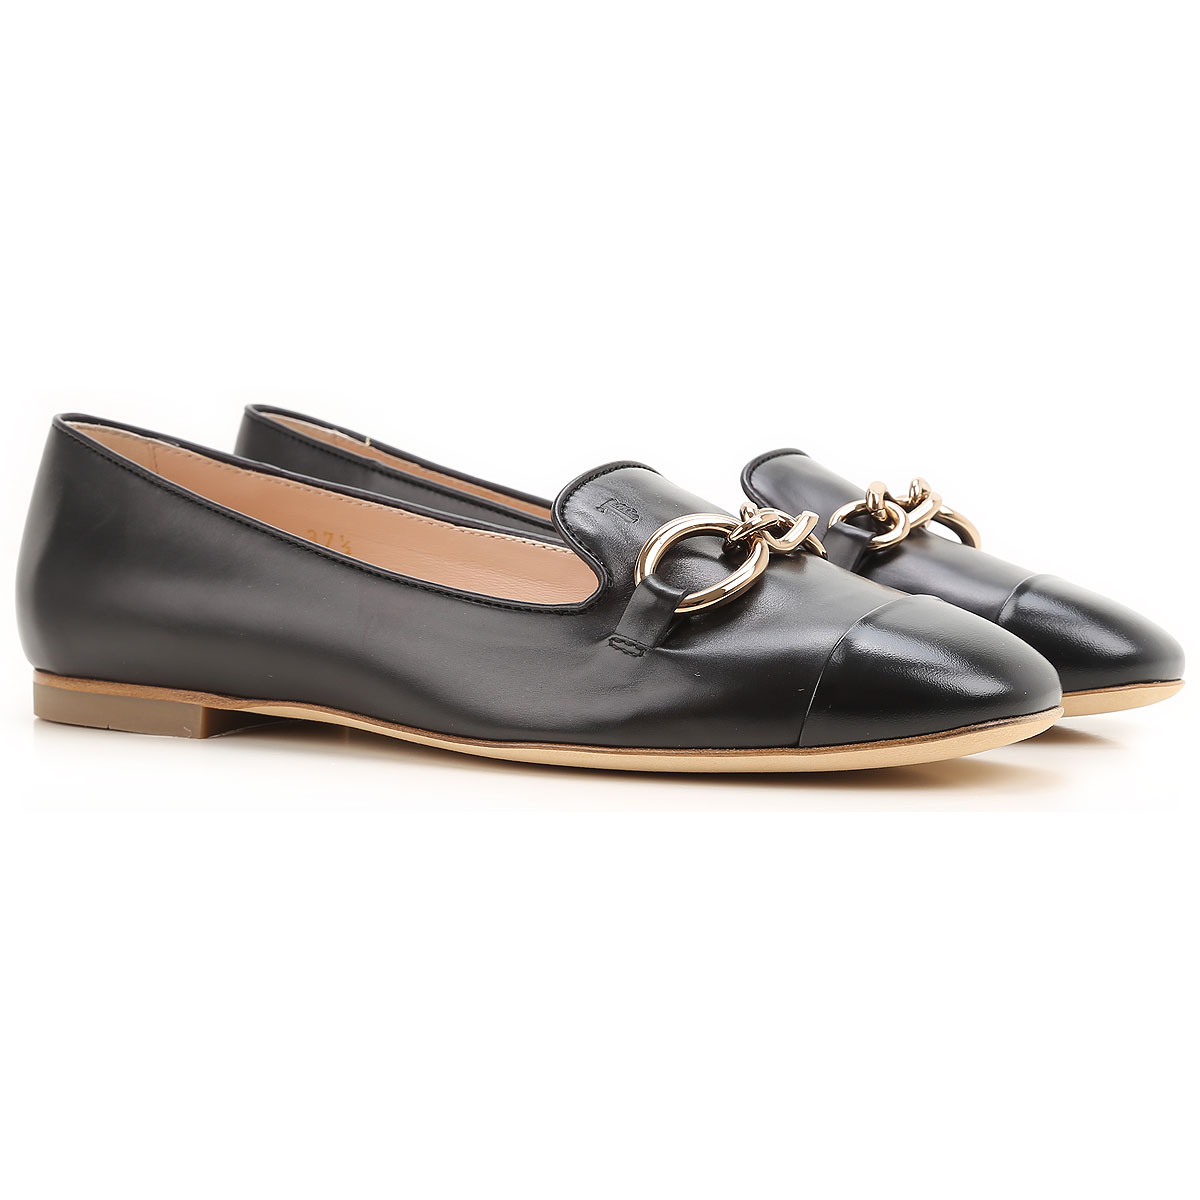 Tods Ballet Flats Ballerina Shoes for Women On Sale in Outlet, Black, Leather, 2019, 7 8